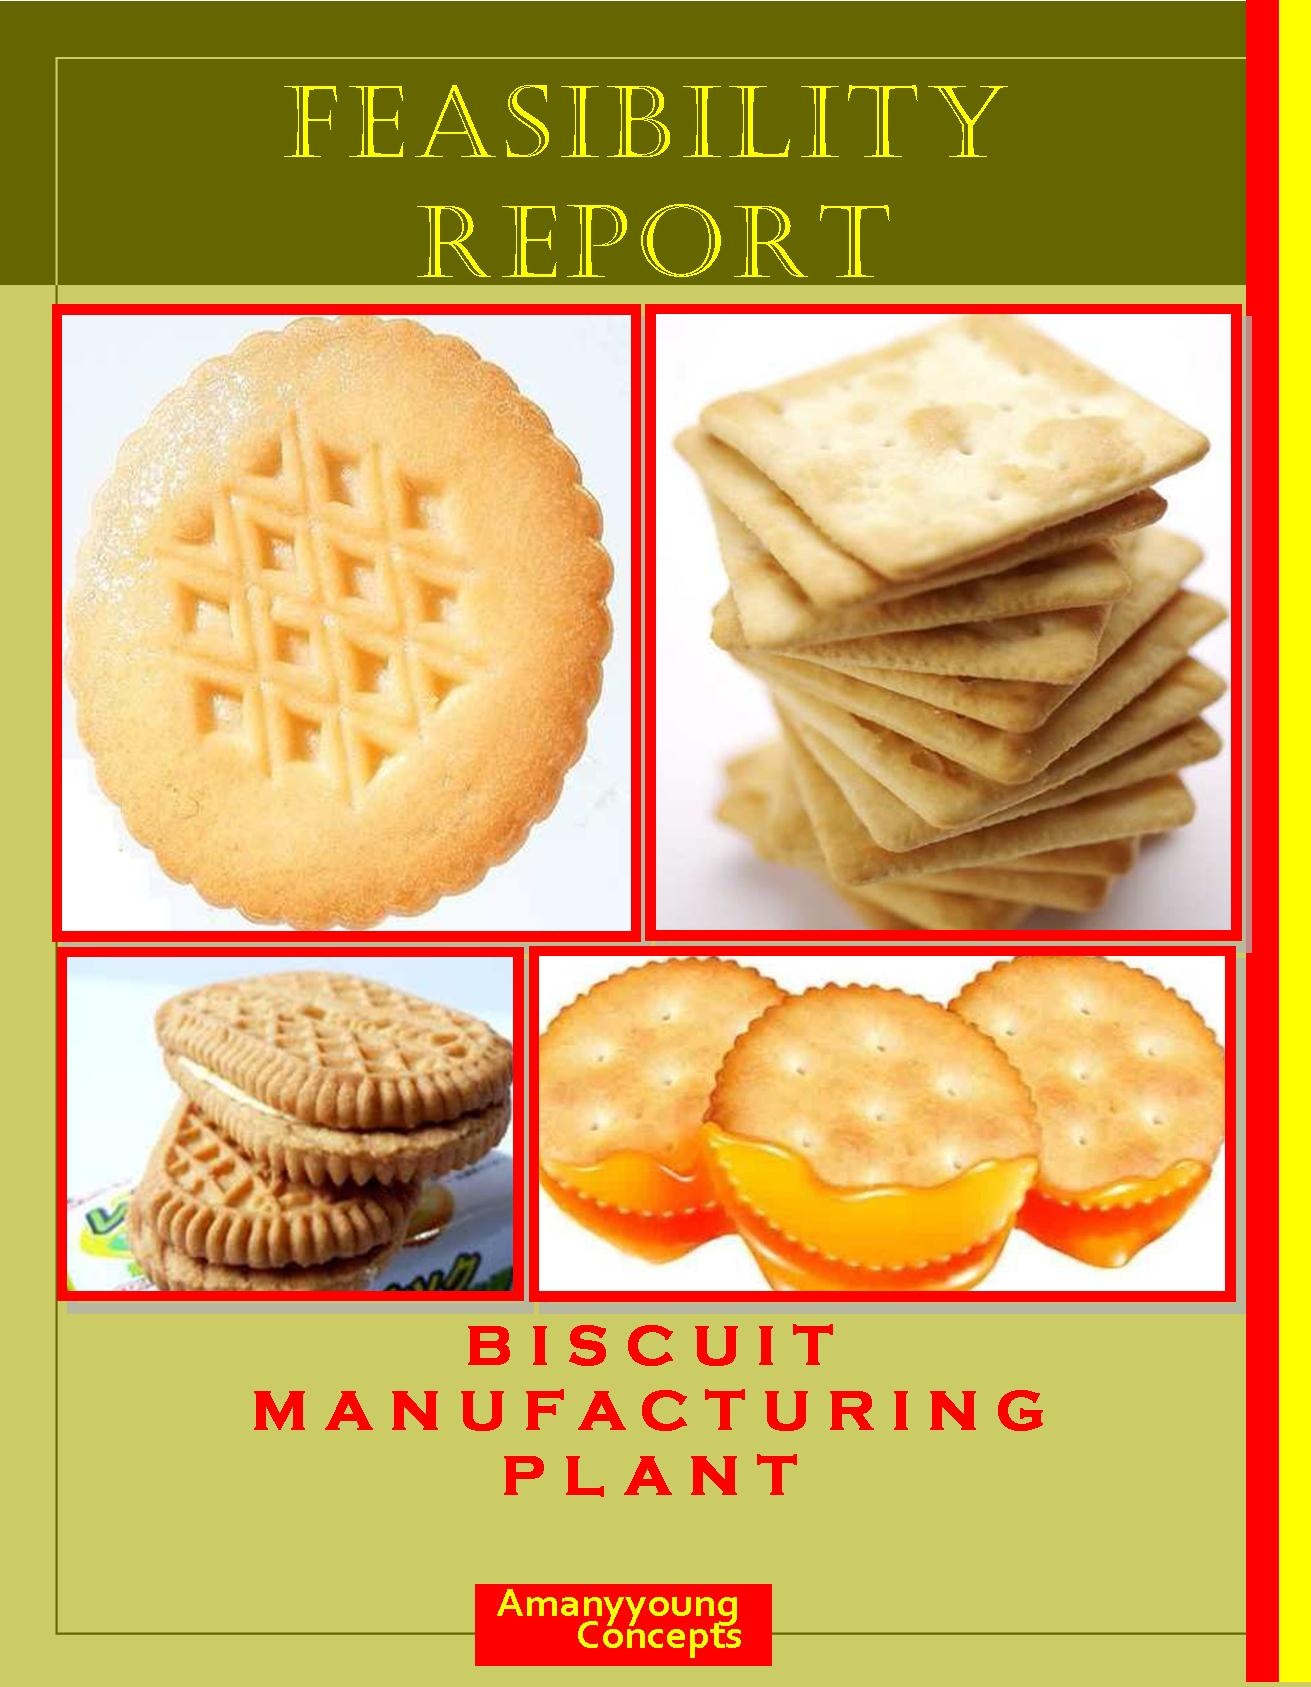 research paper on biscuits Market research report on the bakery and baked goods industry, with bakery and baked goods market share, market analysis, and industry statistics.